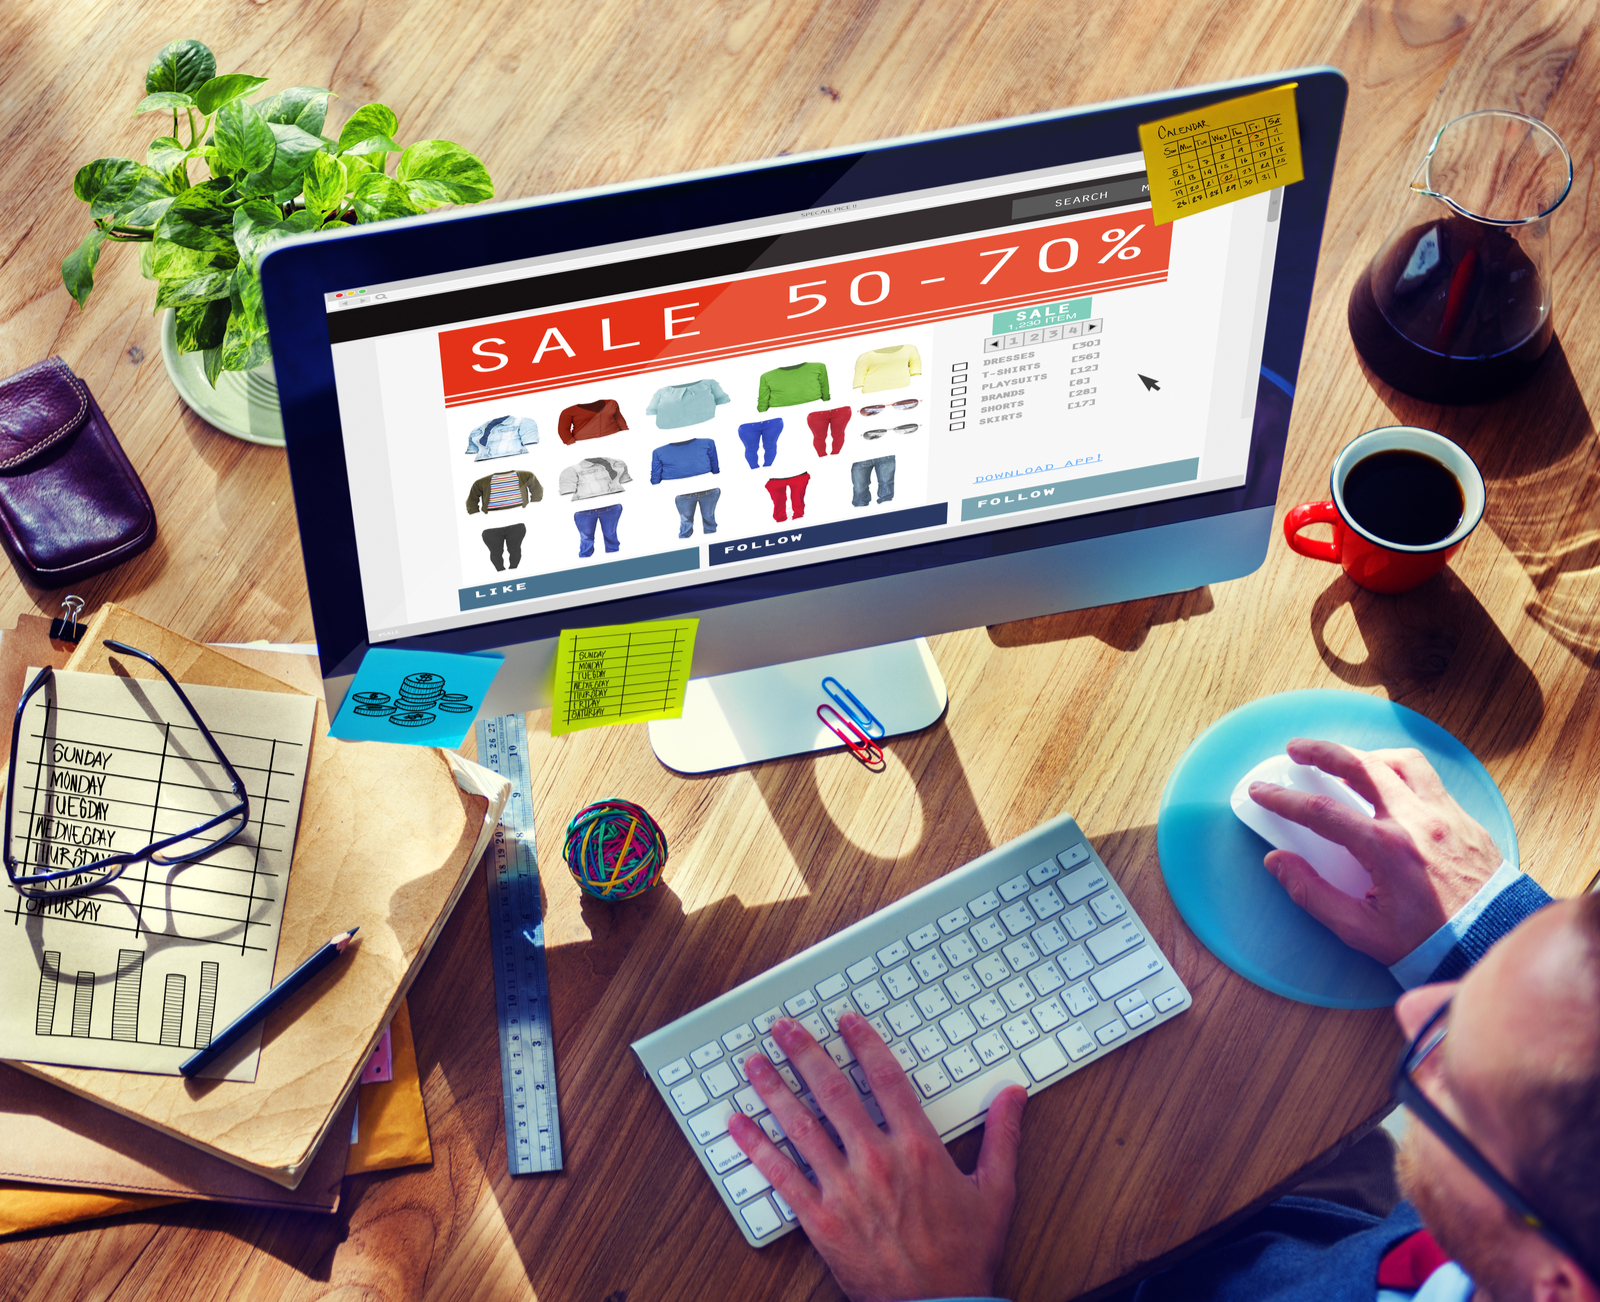 Computer | 14 Examples Of Beautiful, Easy-To-Shop Ecommerce Websites